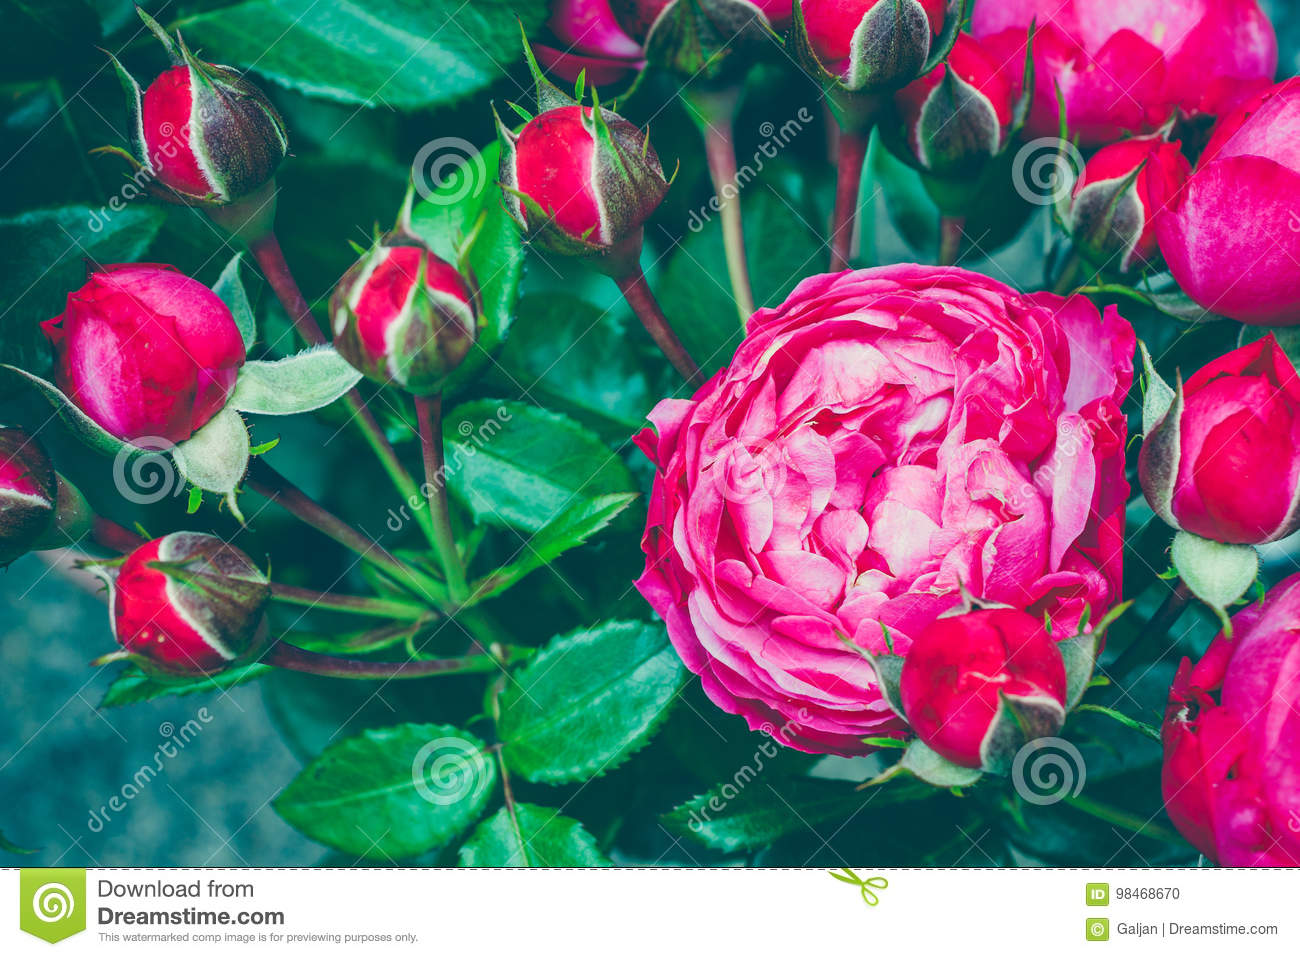 Bouquet Of Centifolia Rose With Foliage Natural Flower Soft Focus